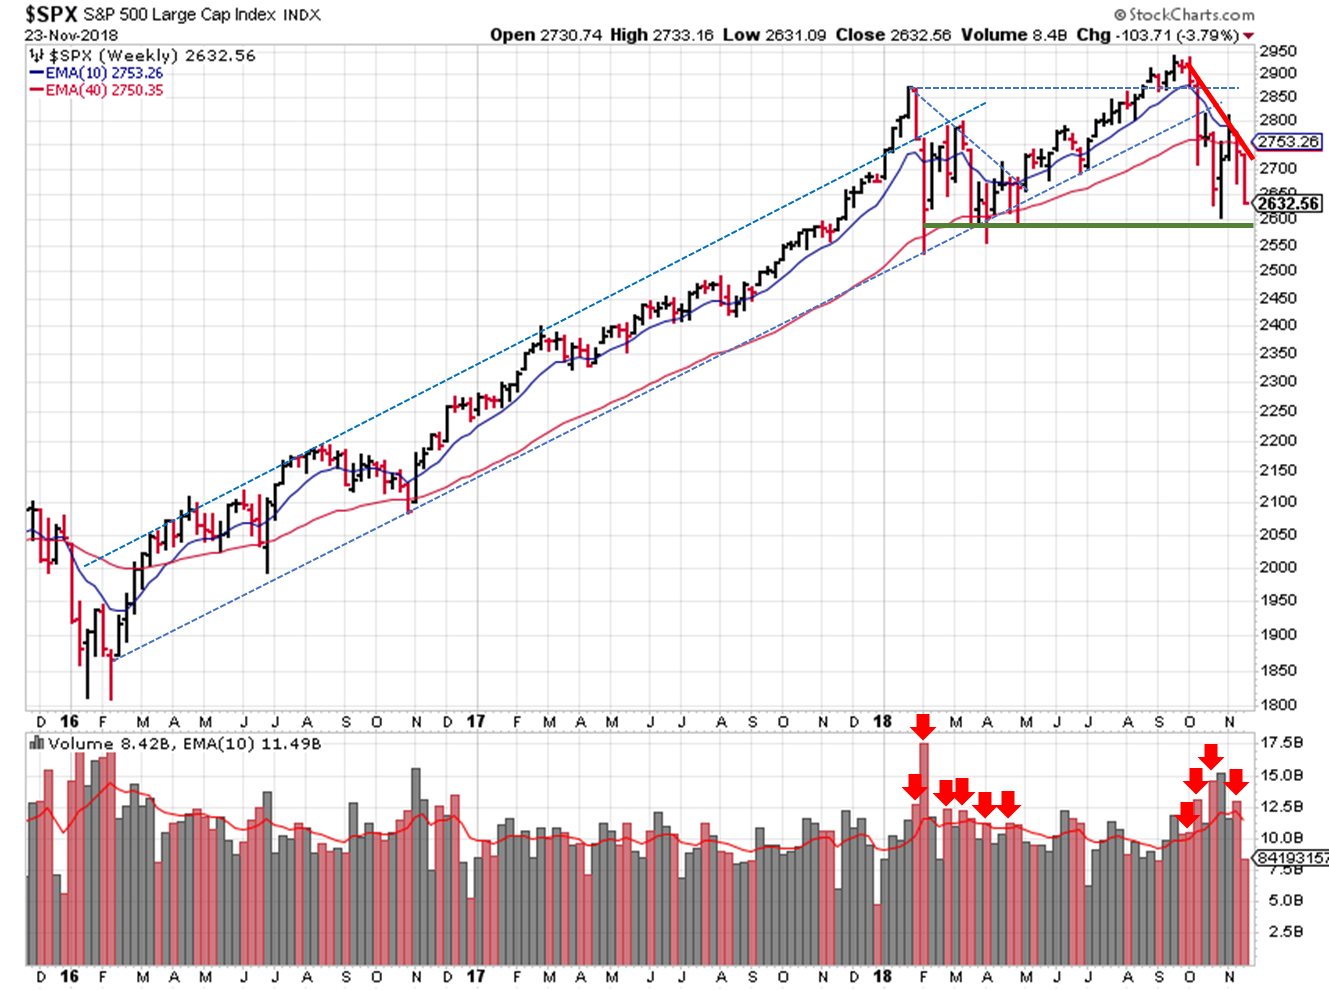 2018-11-25 - $SPX Technical Analysis - Weekly